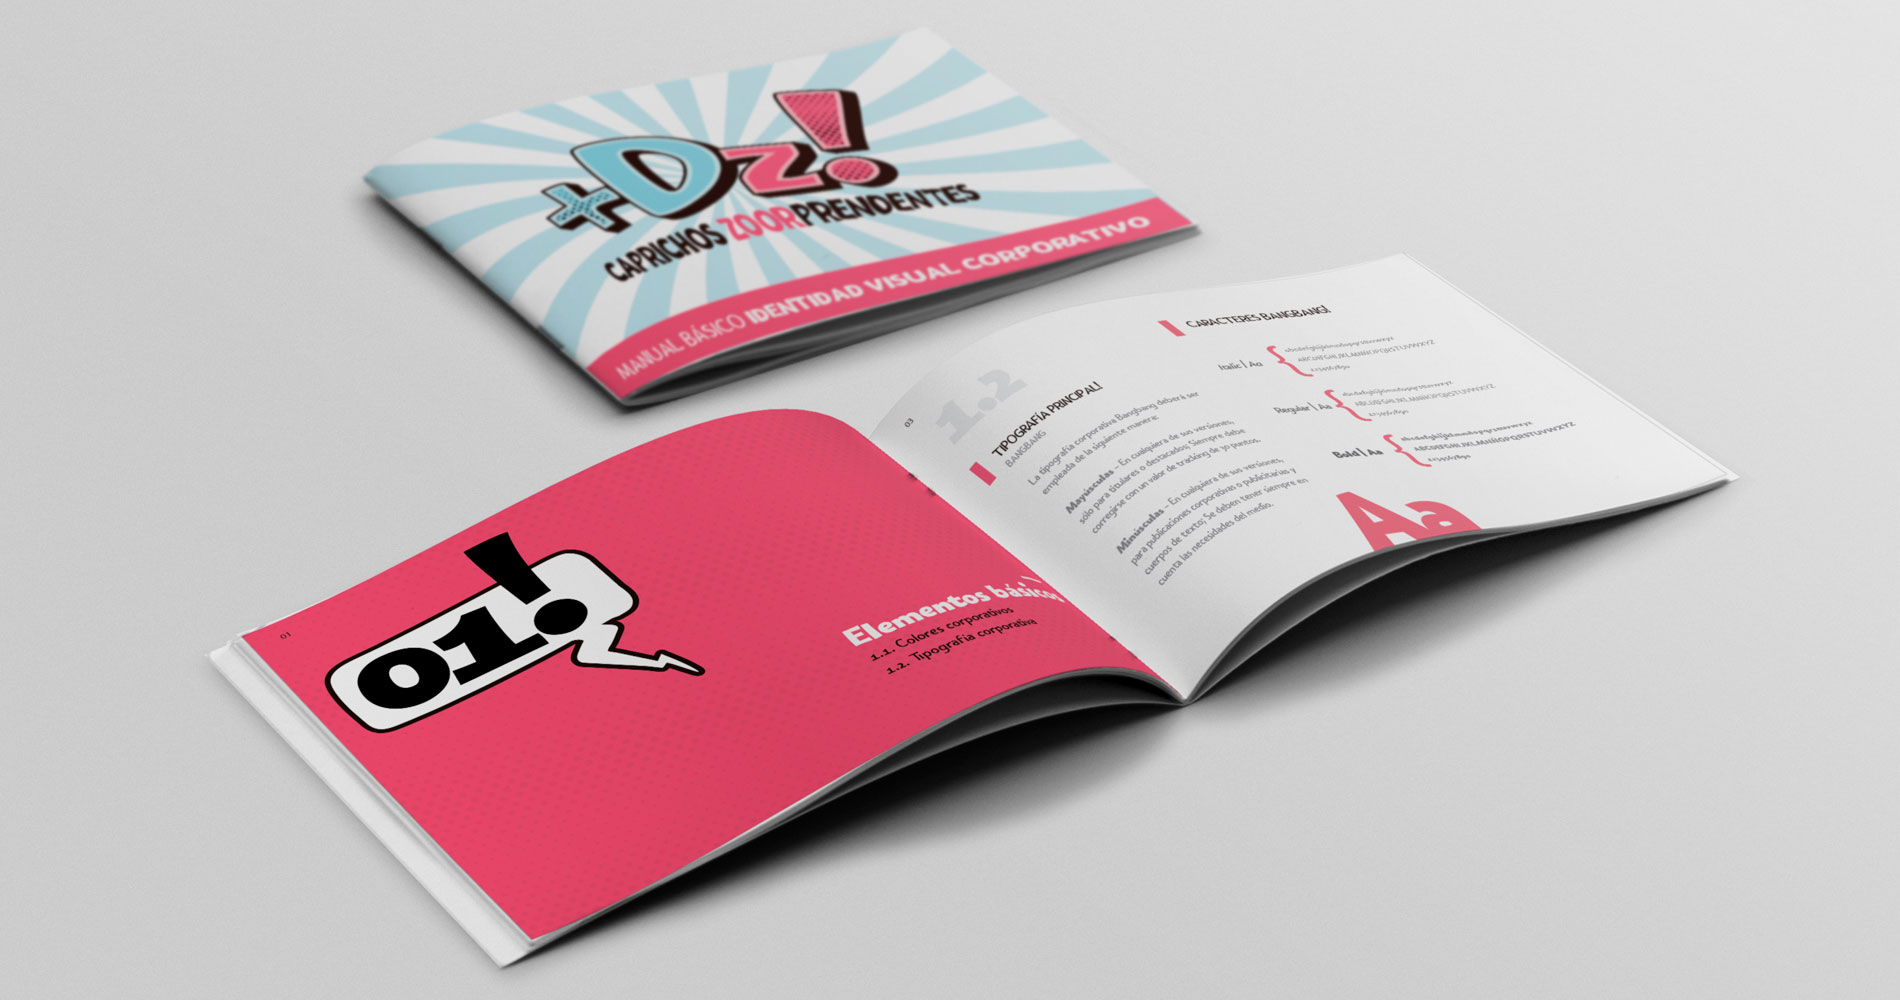 Identidad visual corporativa +DZ | branding